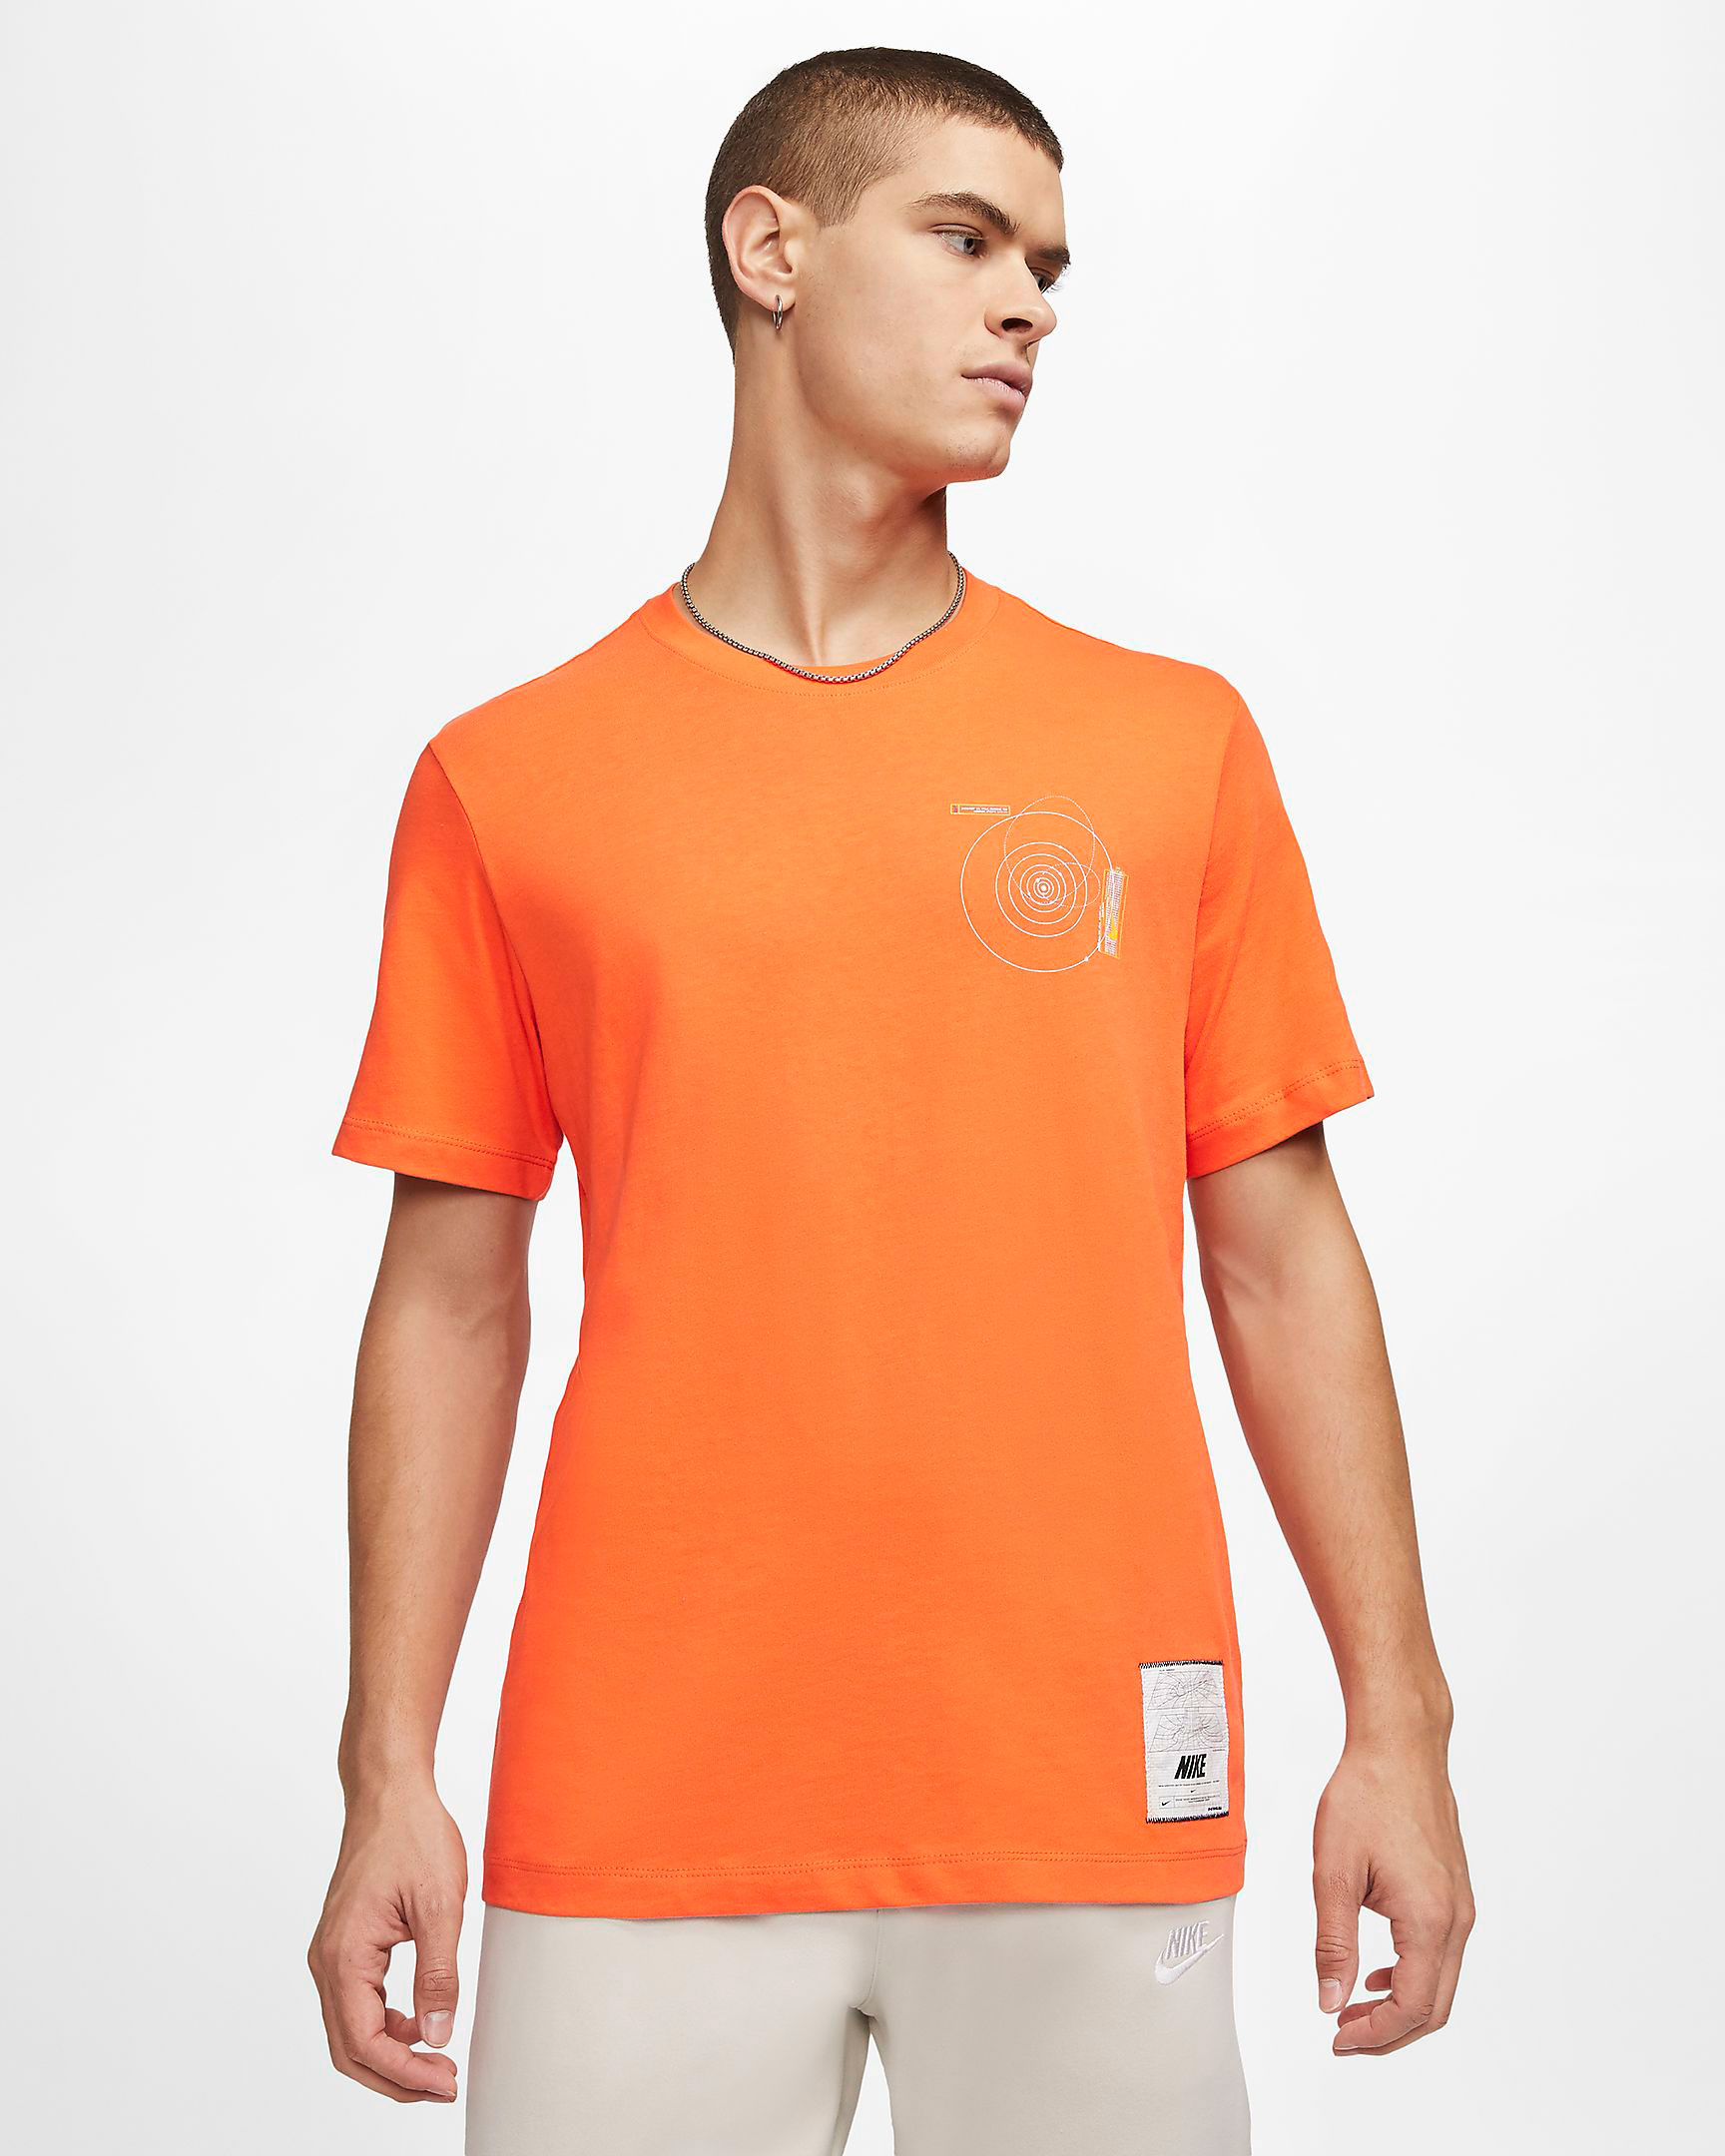 nike-supernova-shirt-orange-1